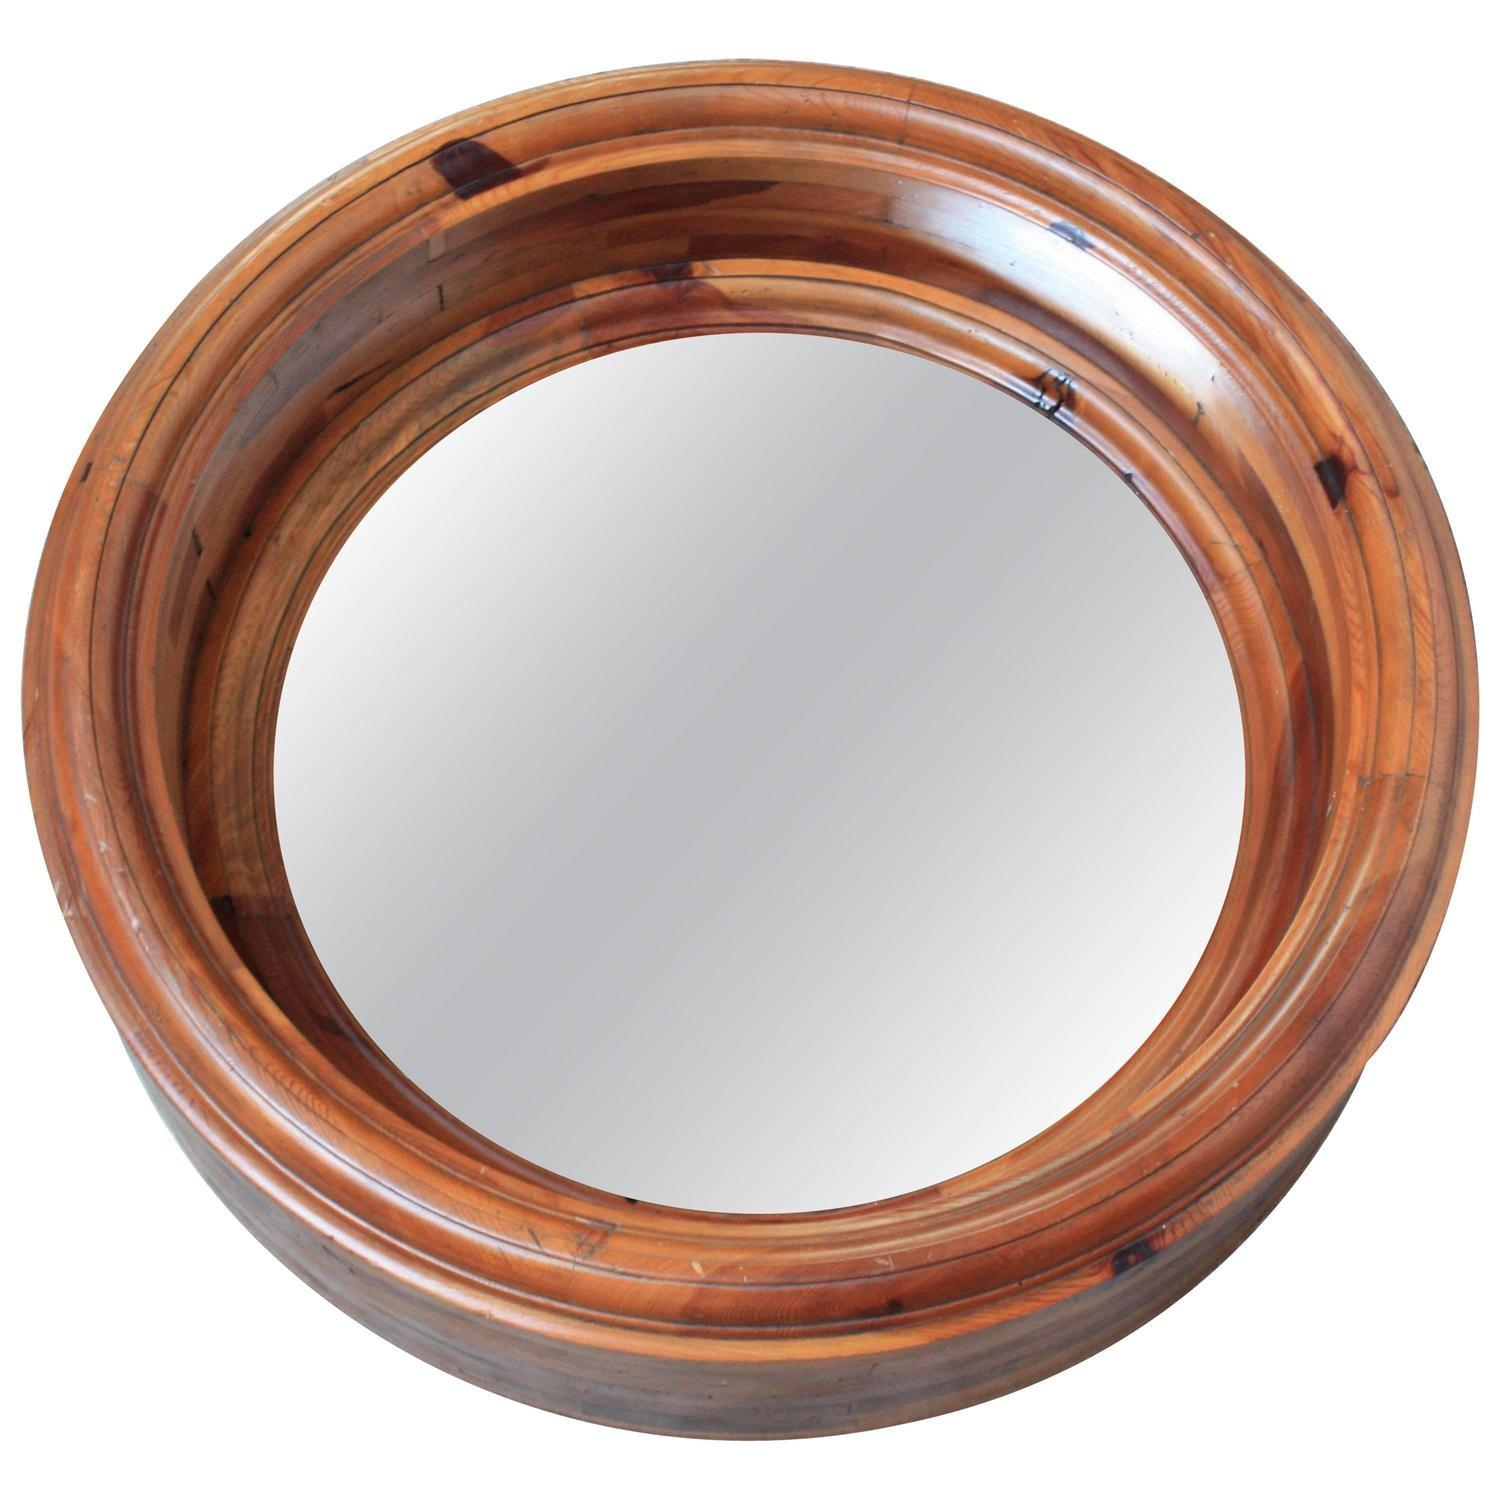 Large Wooden Porthole Mirrorralph Lauren For Sale At 1Stdibs Throughout Porthole Mirrors For Sale (Image 10 of 20)